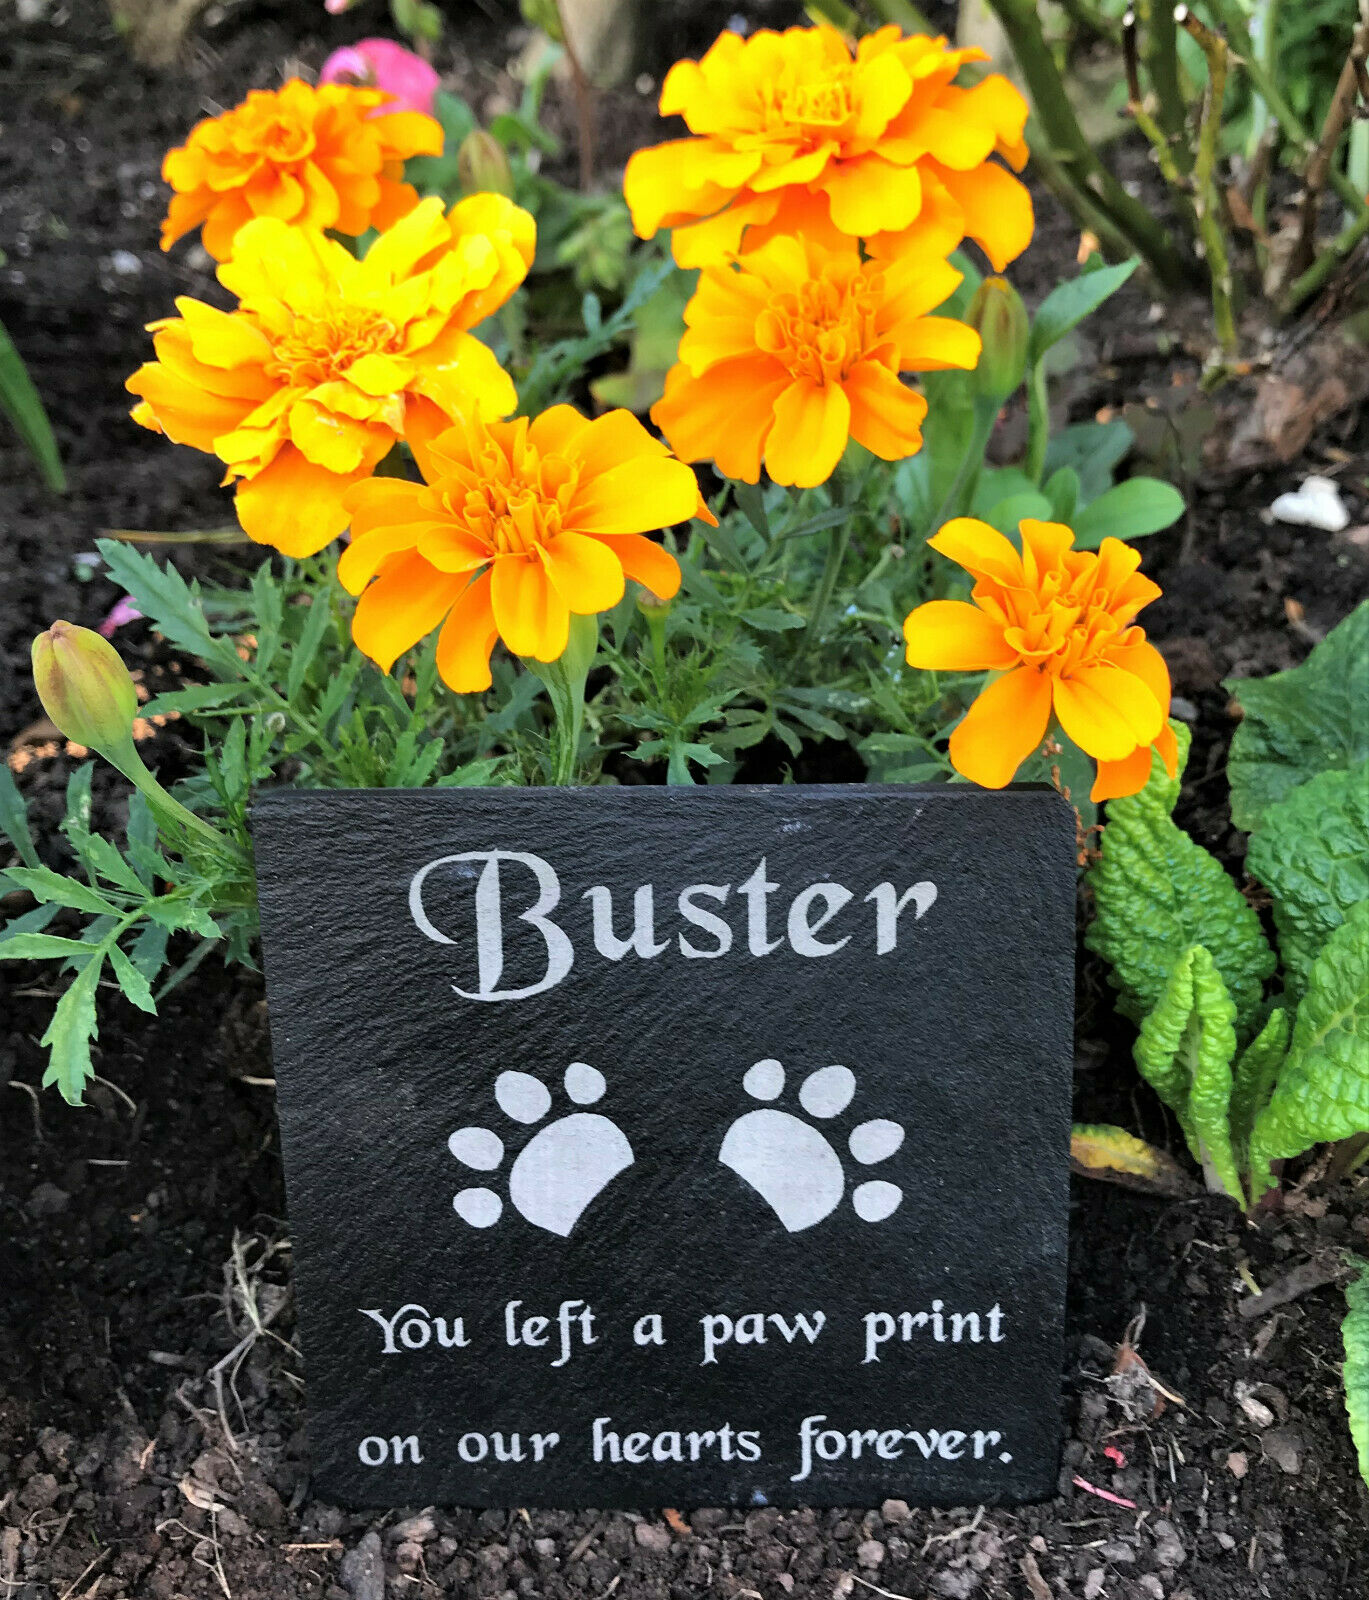 Personalised Engraved Slate Pet Memorial Grave Marker Plaque Dog Cat Rabbit